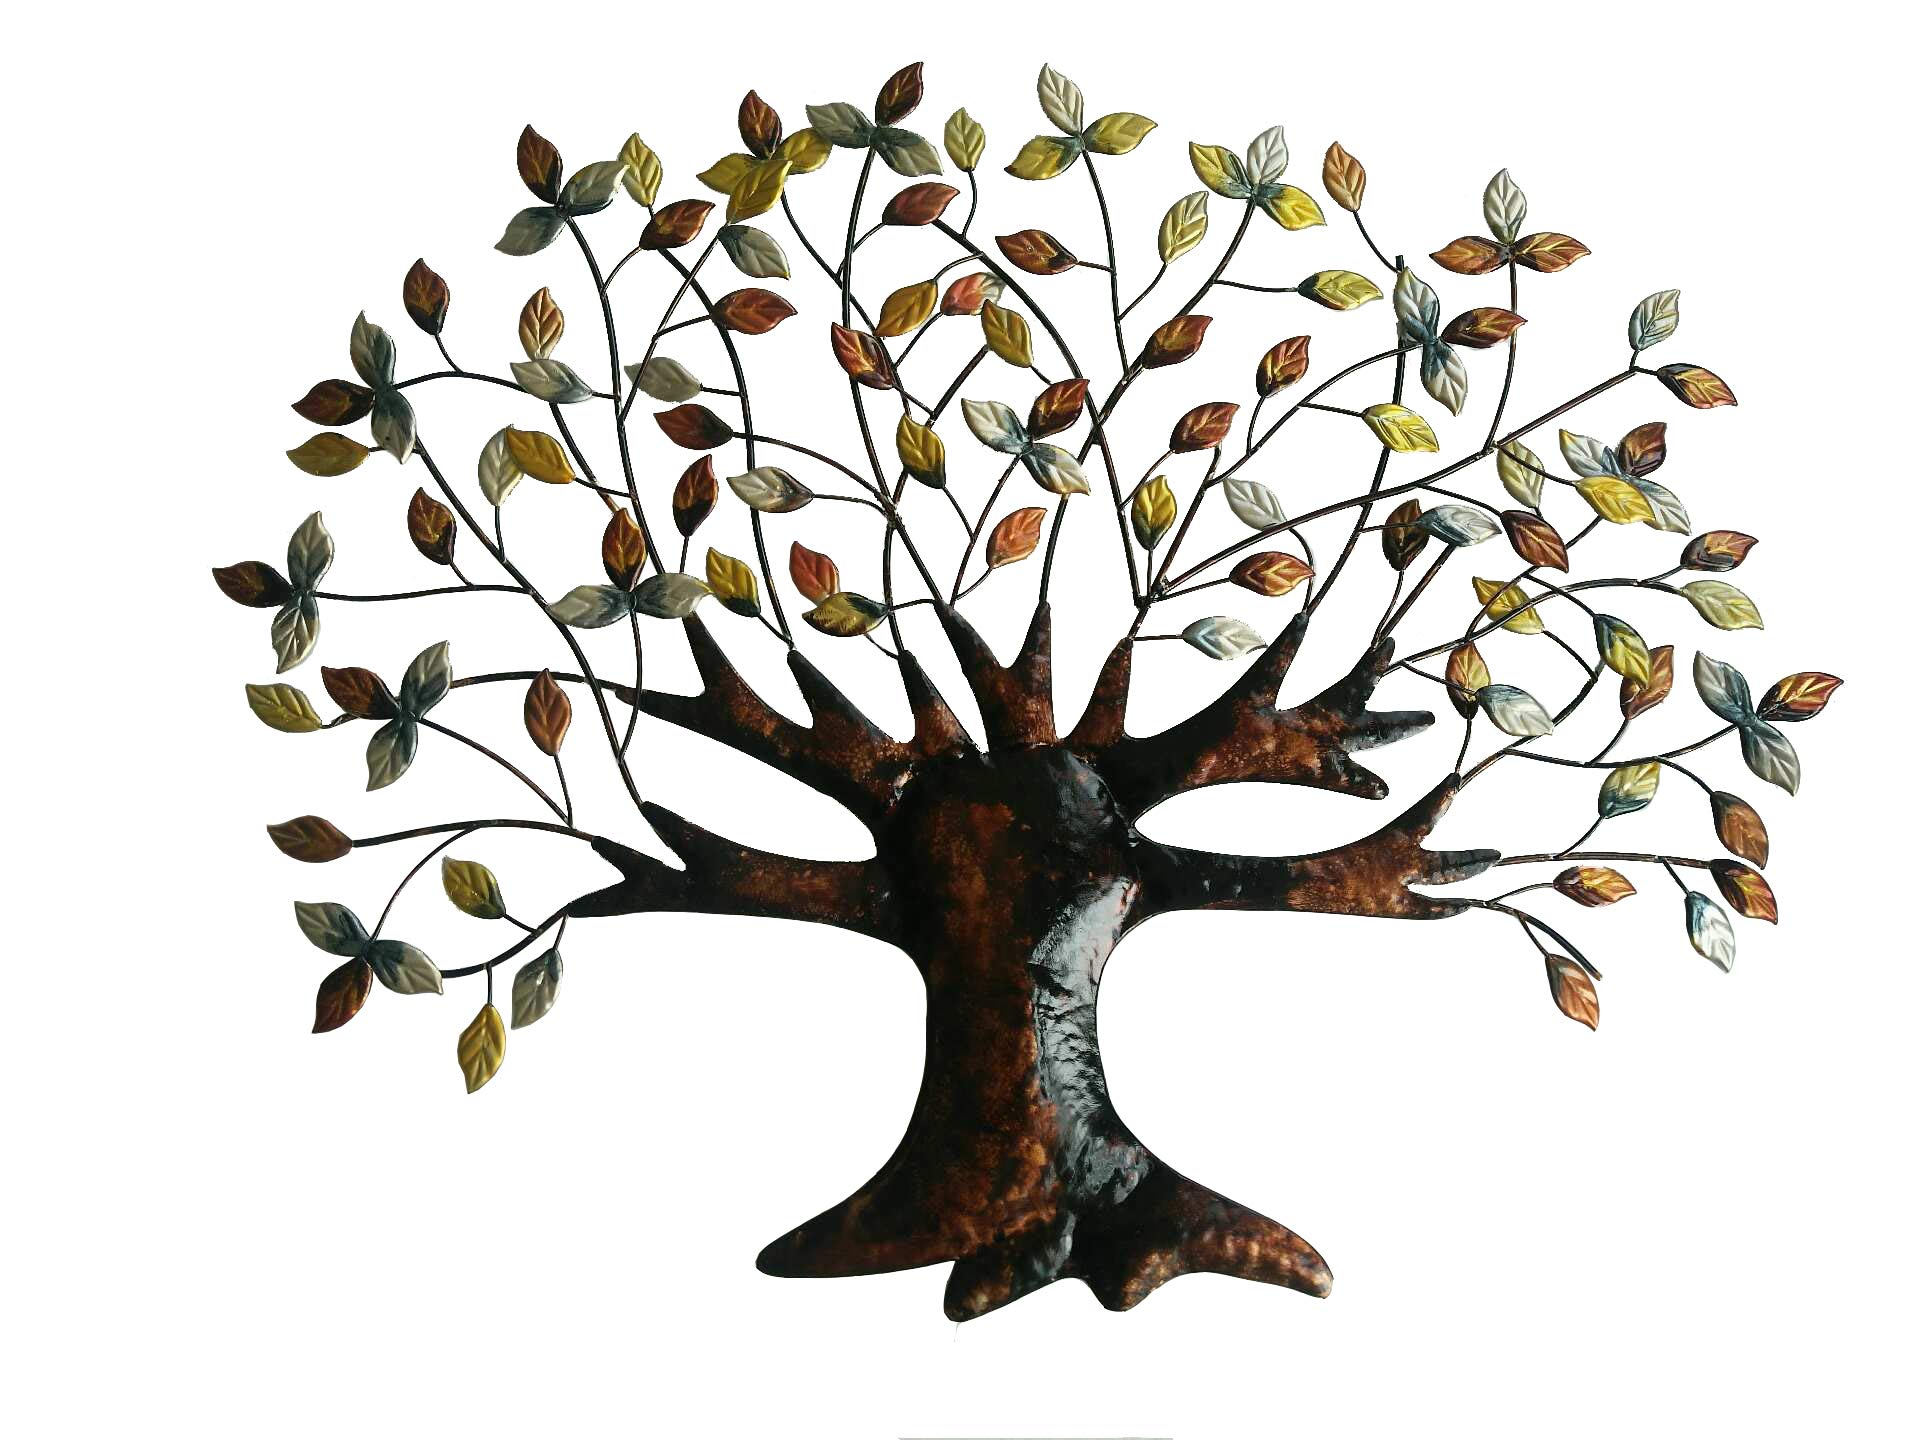 Tree of Life Wall Art Decoration - 30.5 Inch W x 24 Inch H - Made of Iron by Palos Designs